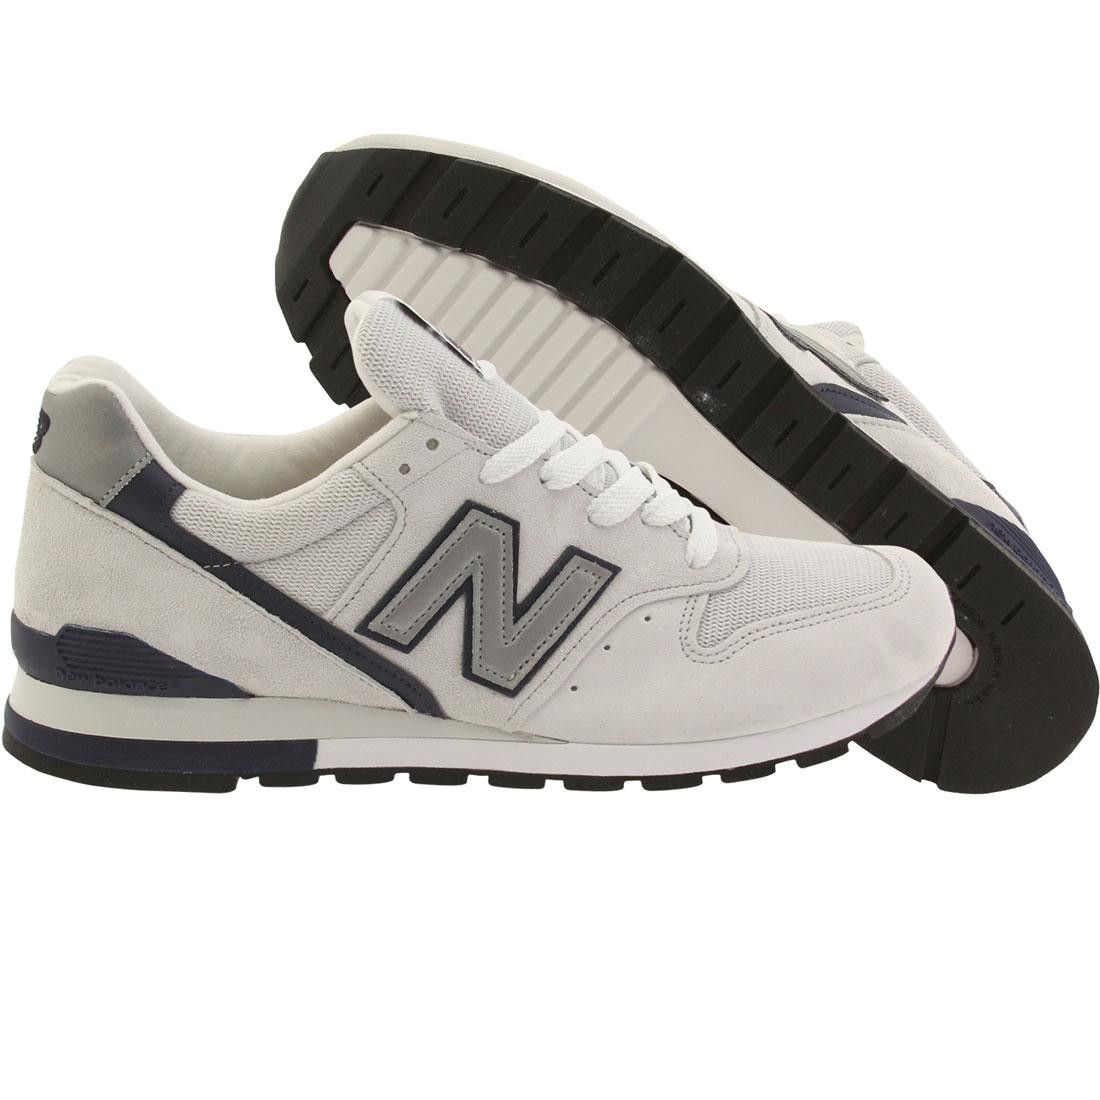 online retailer 86a6a f6a82 New Balance Men 996 Heritage M996CFIS - Made In USA (gray / clay / navy)